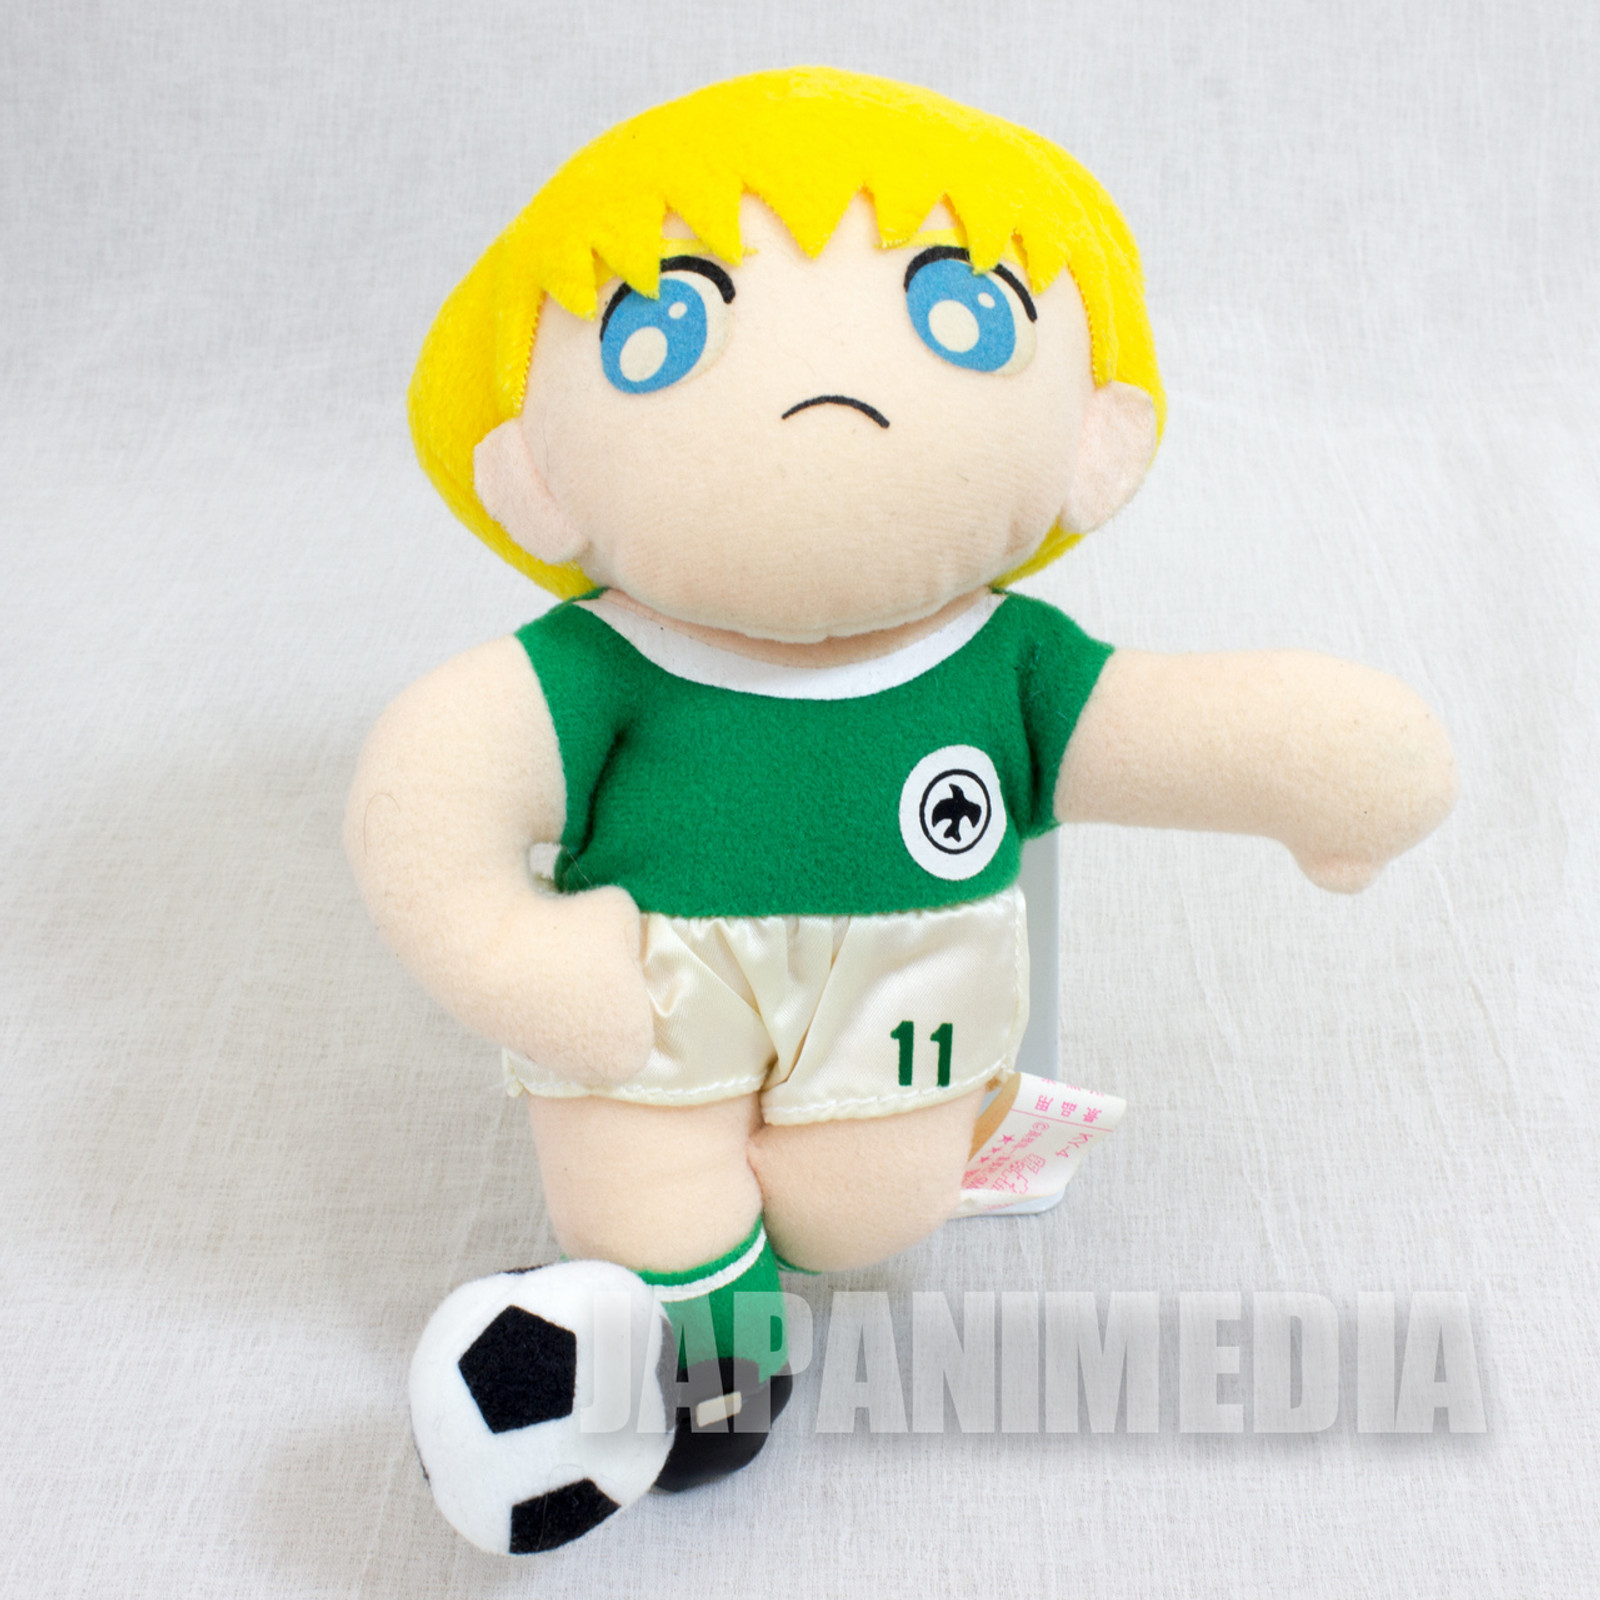 Captain Tsubasa Karl Heinz Schneider Plush Doll 1993 JAPAN ANIME MANGA